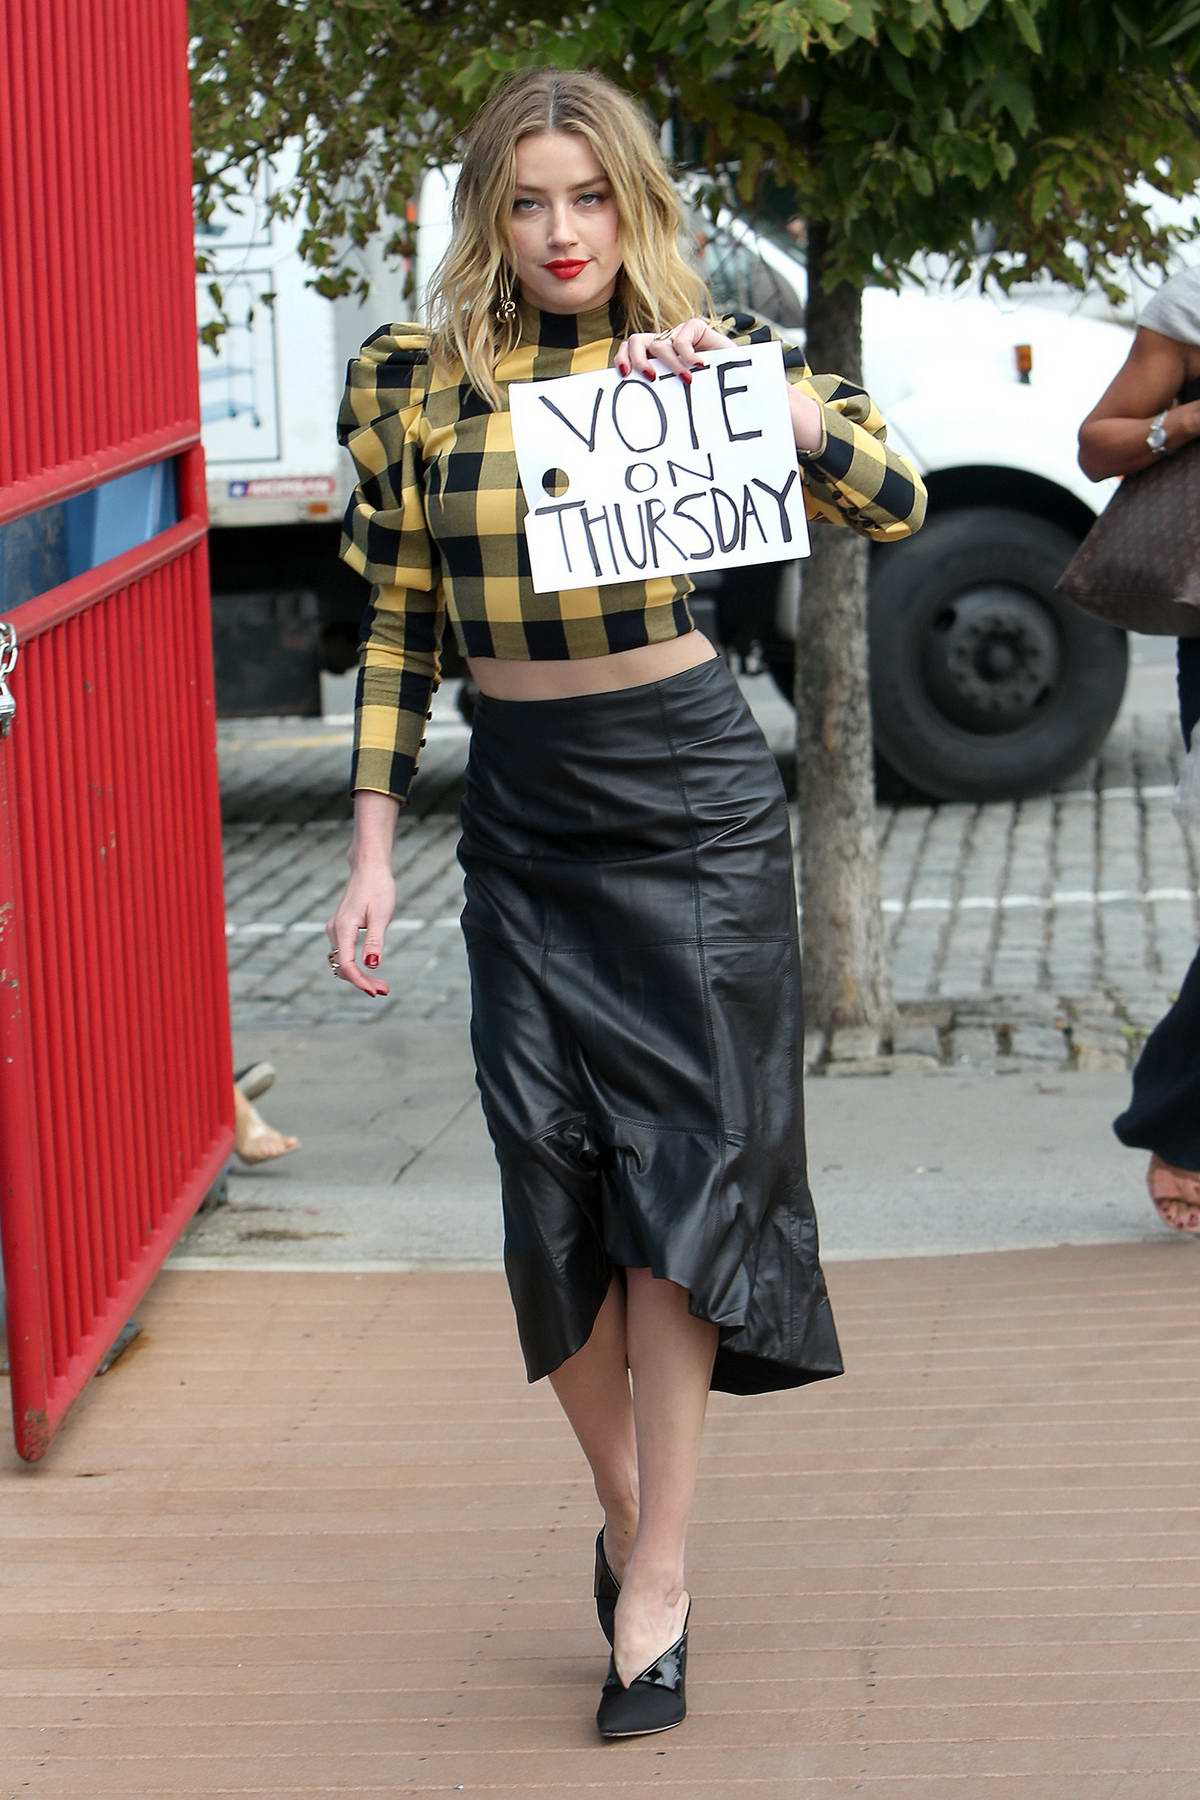 Amber Heard holds up a 'Vote' sign while arriving to a Fashion Show at Chelsea Pier in New York City